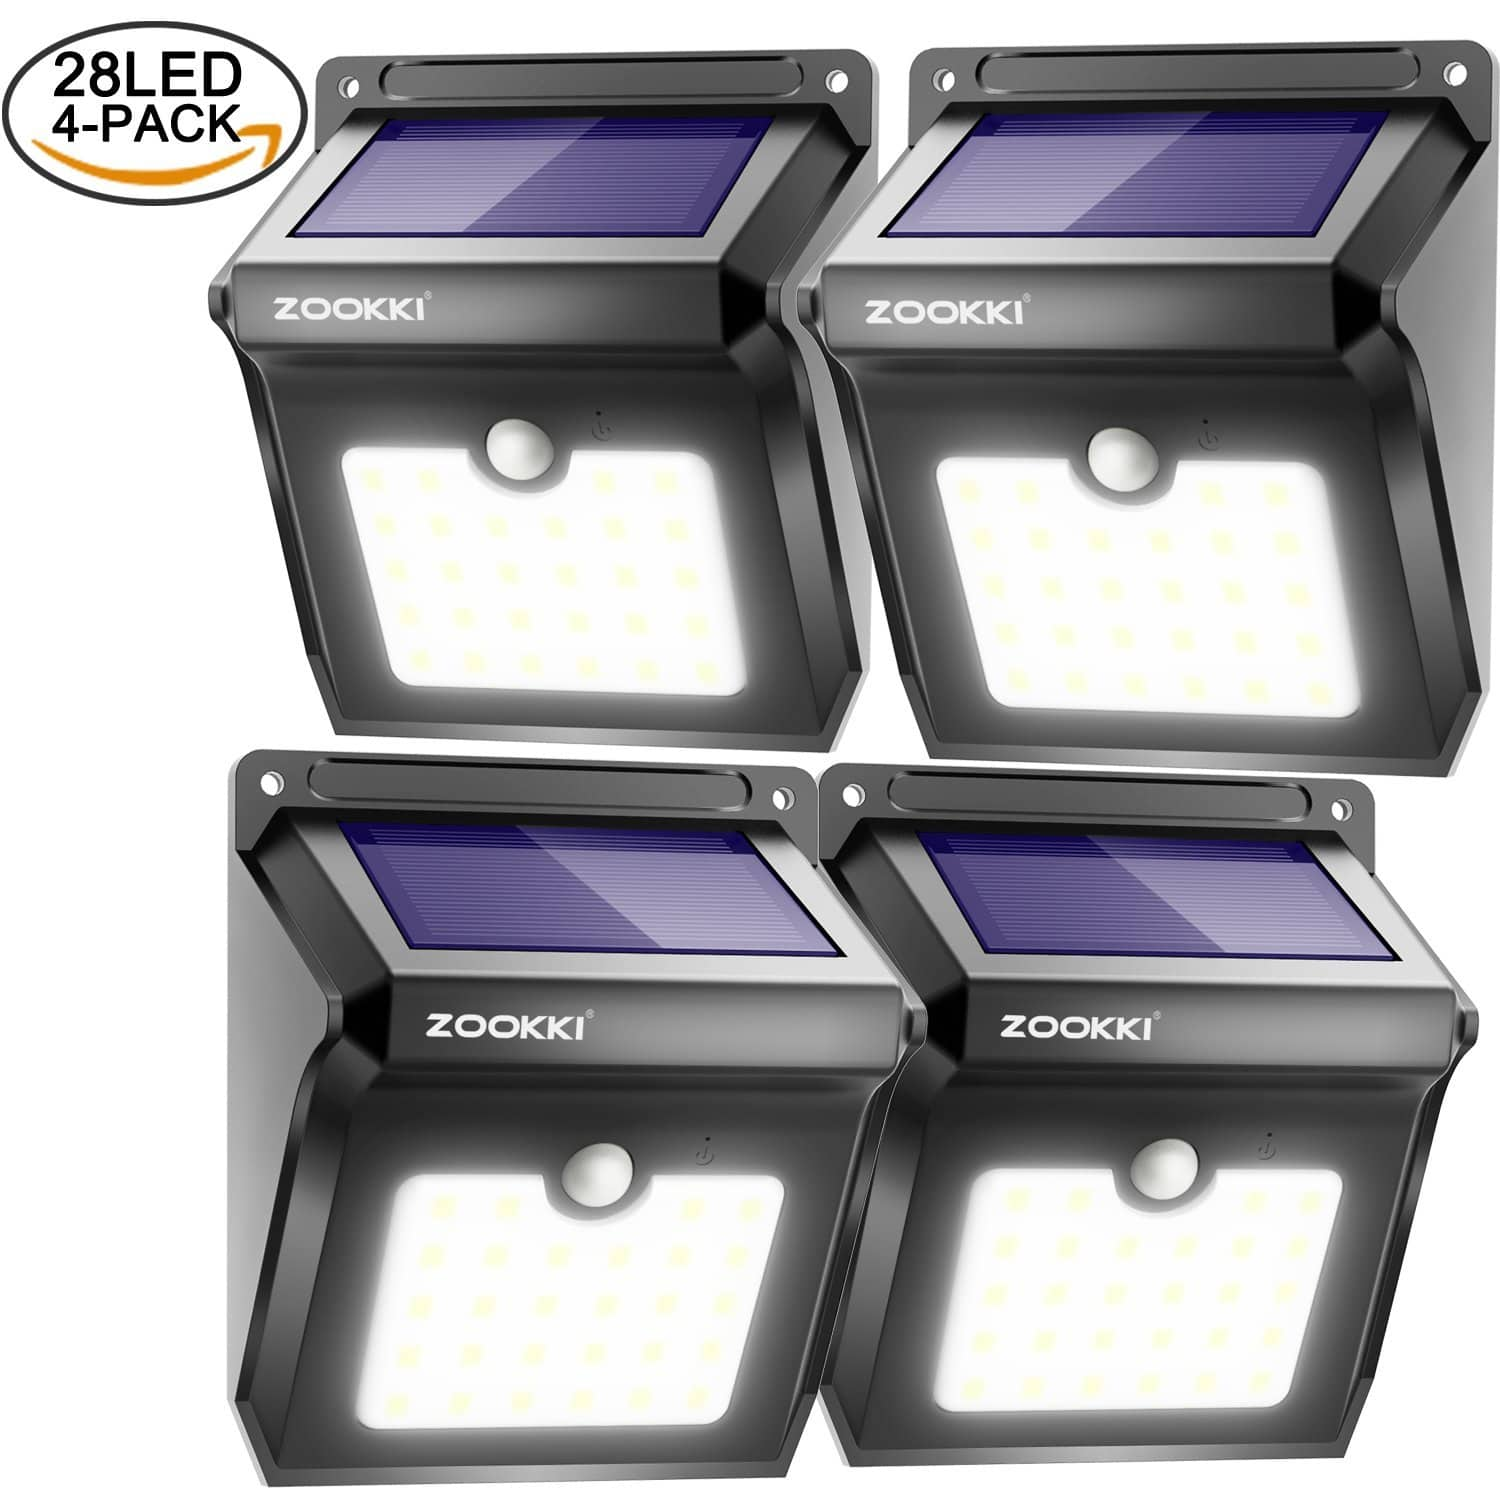 Upgraded 28 LEDs Wireless Waterproof Solar Light (4 Pack) for $23.09 @Amazon